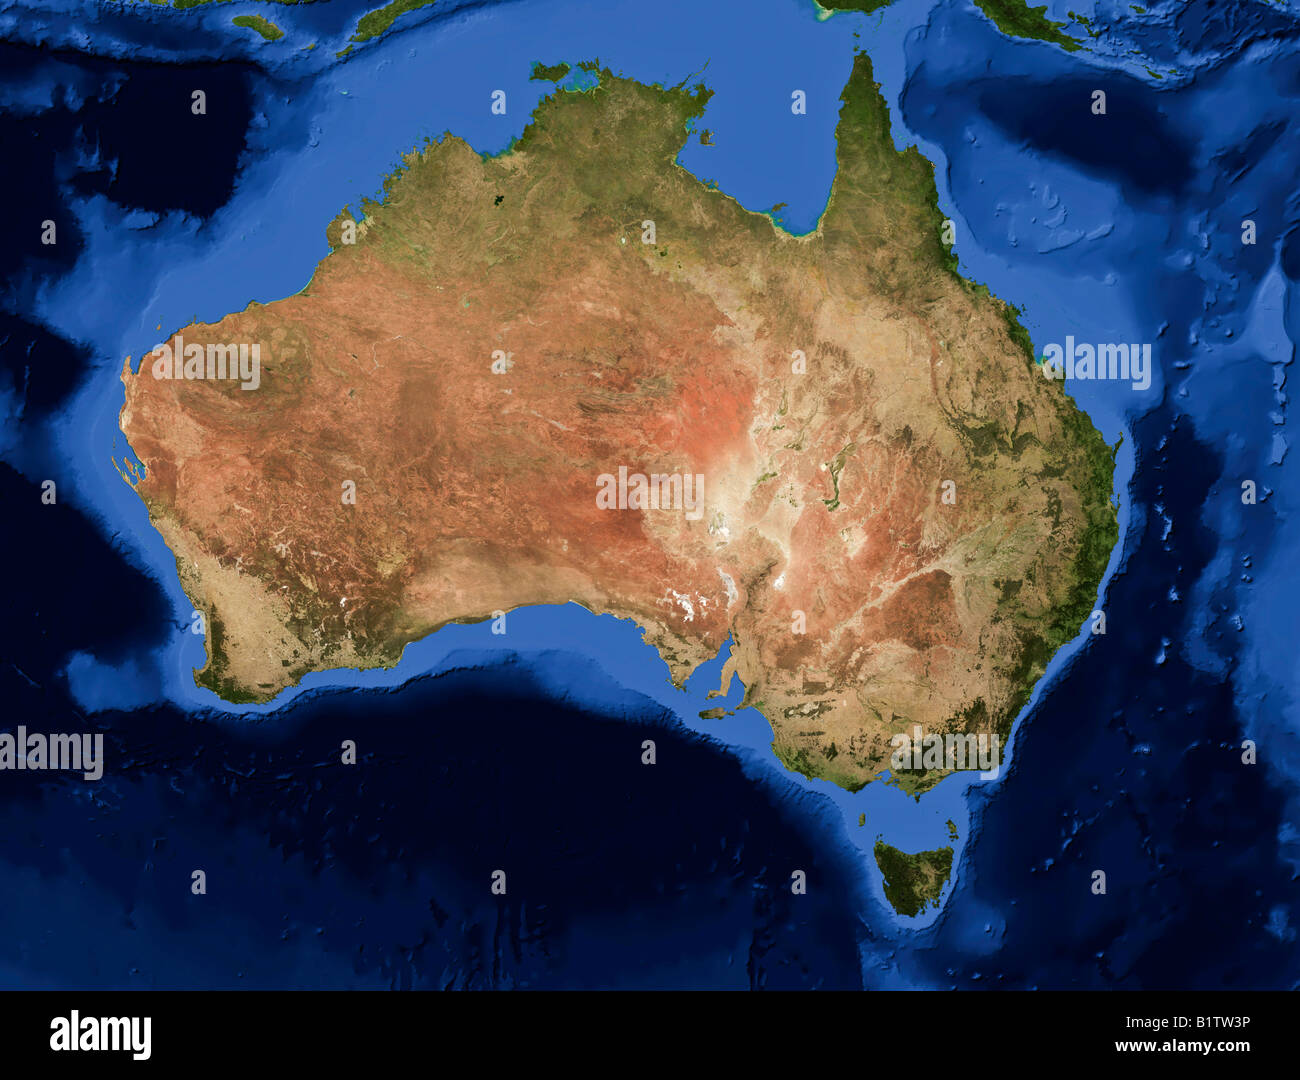 google earth satellite map live with Stock Photo True Color Terramodis Satellite Image Of Australia Rendered In Lambert 18371578 on Exista Dovezi Teritoriul Chinei A Fost Acoperit De Ape In Urma Cu Aproximativ 4000 De Ani 2705951 moreover Antarctica Map also Have You Seen Your House From Earth Satellite View also 20 صورة مذهلة للأرض من الفضاء also The Strange Mystery Of North Sentinel Island.